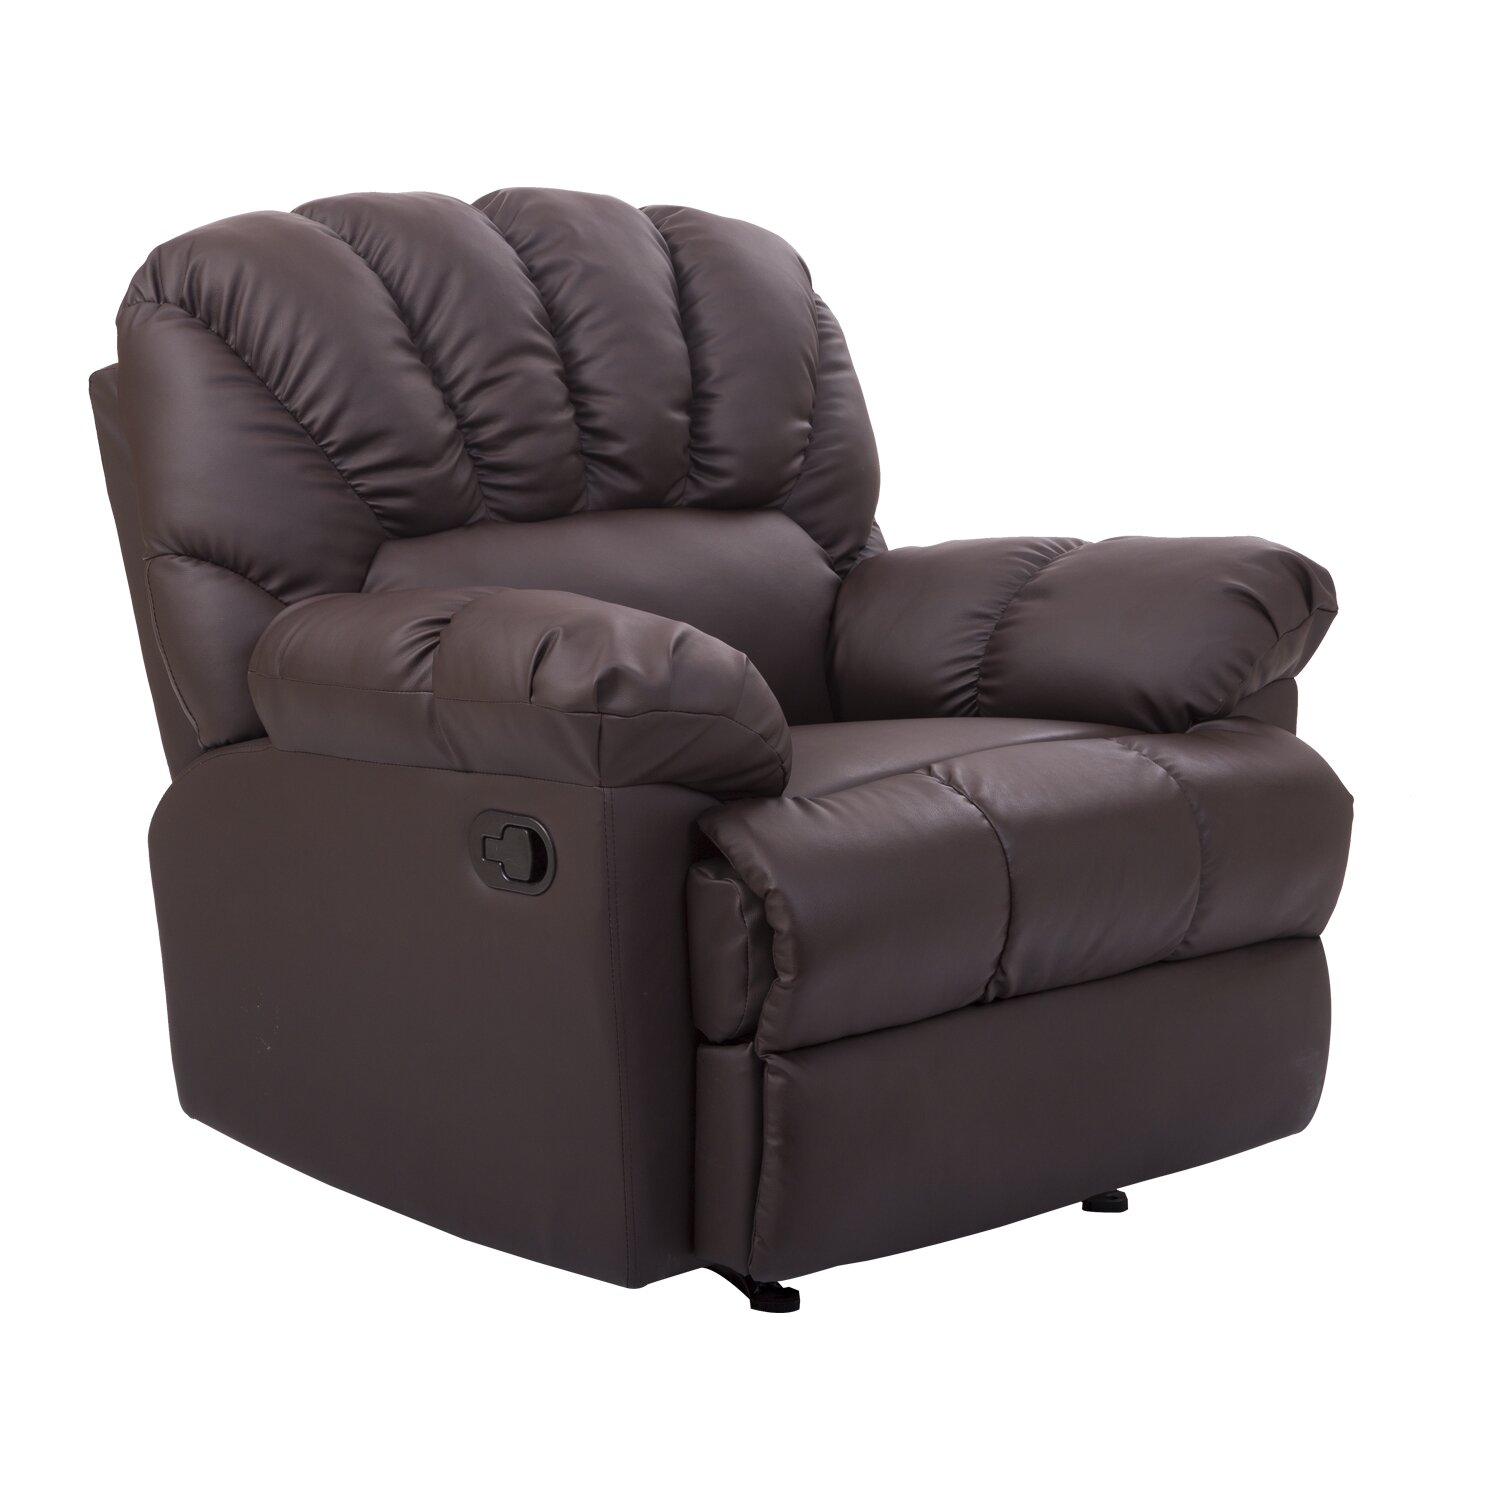 homcom rocking sofa recliner reviews wayfair. Black Bedroom Furniture Sets. Home Design Ideas